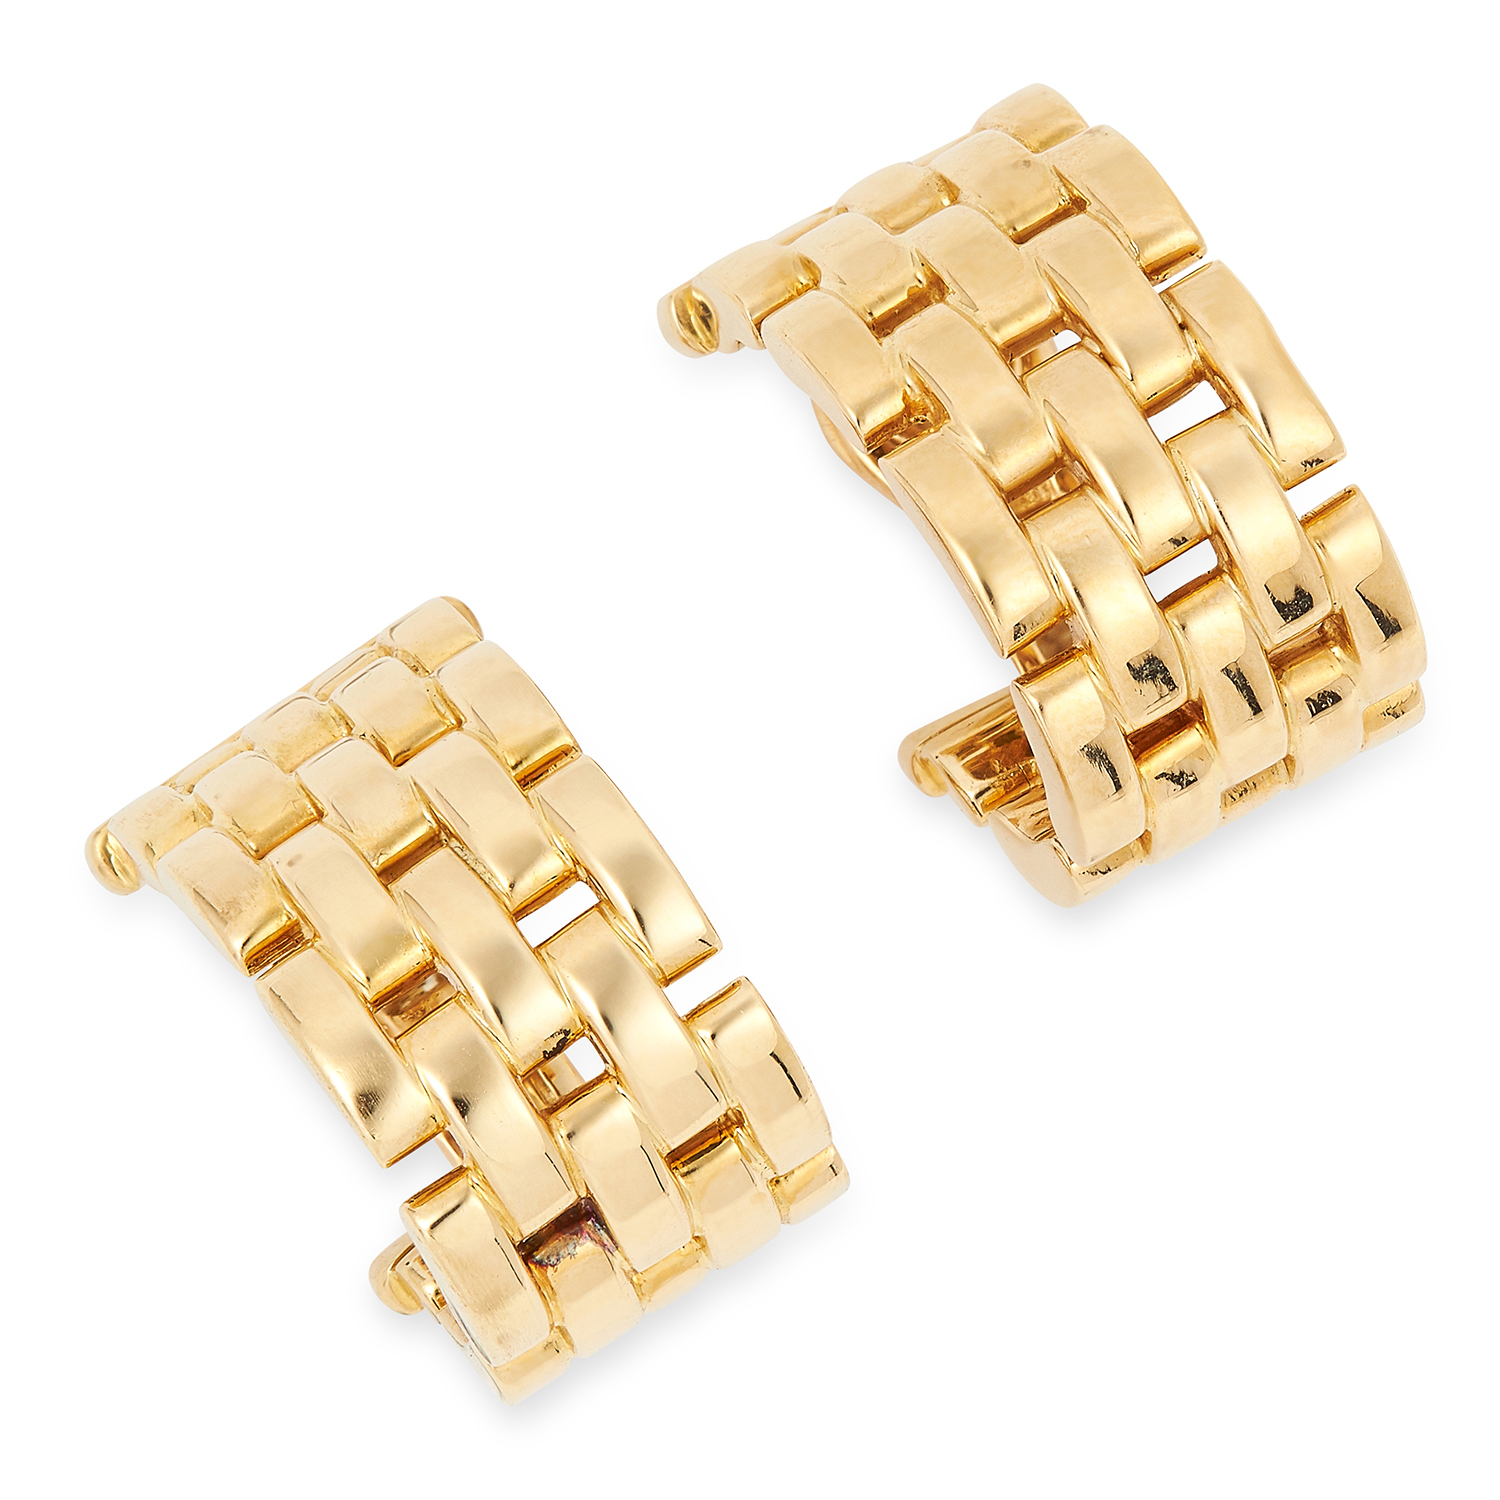 A PAIR OF MAILLON PANTHERE HOOP EARRINGS, CARTIER each designed as an incomplete hoop of alternating